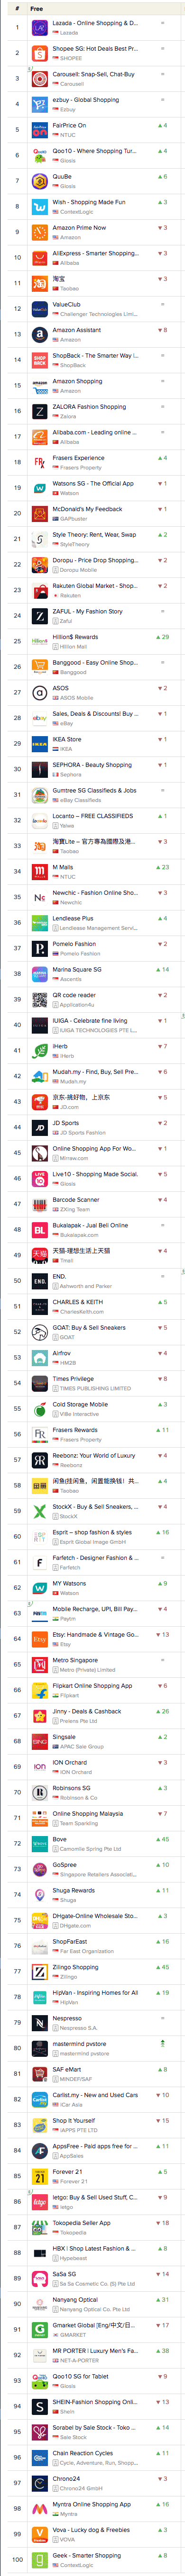 Top Mobile Shopping Apps on Google Play in Singapore 19 Mar 2019